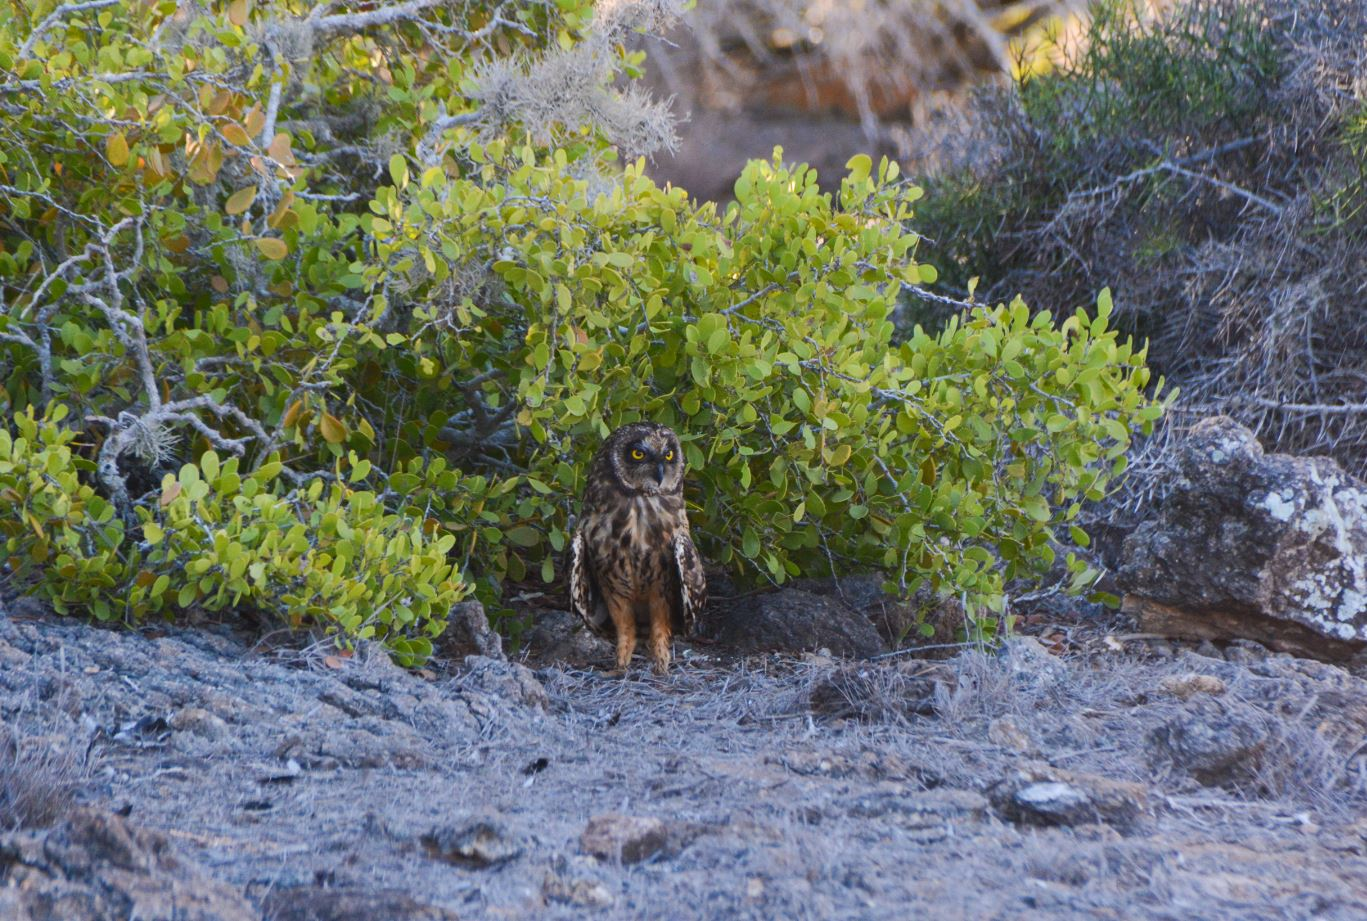 Short eared-owl standing next to a tree.